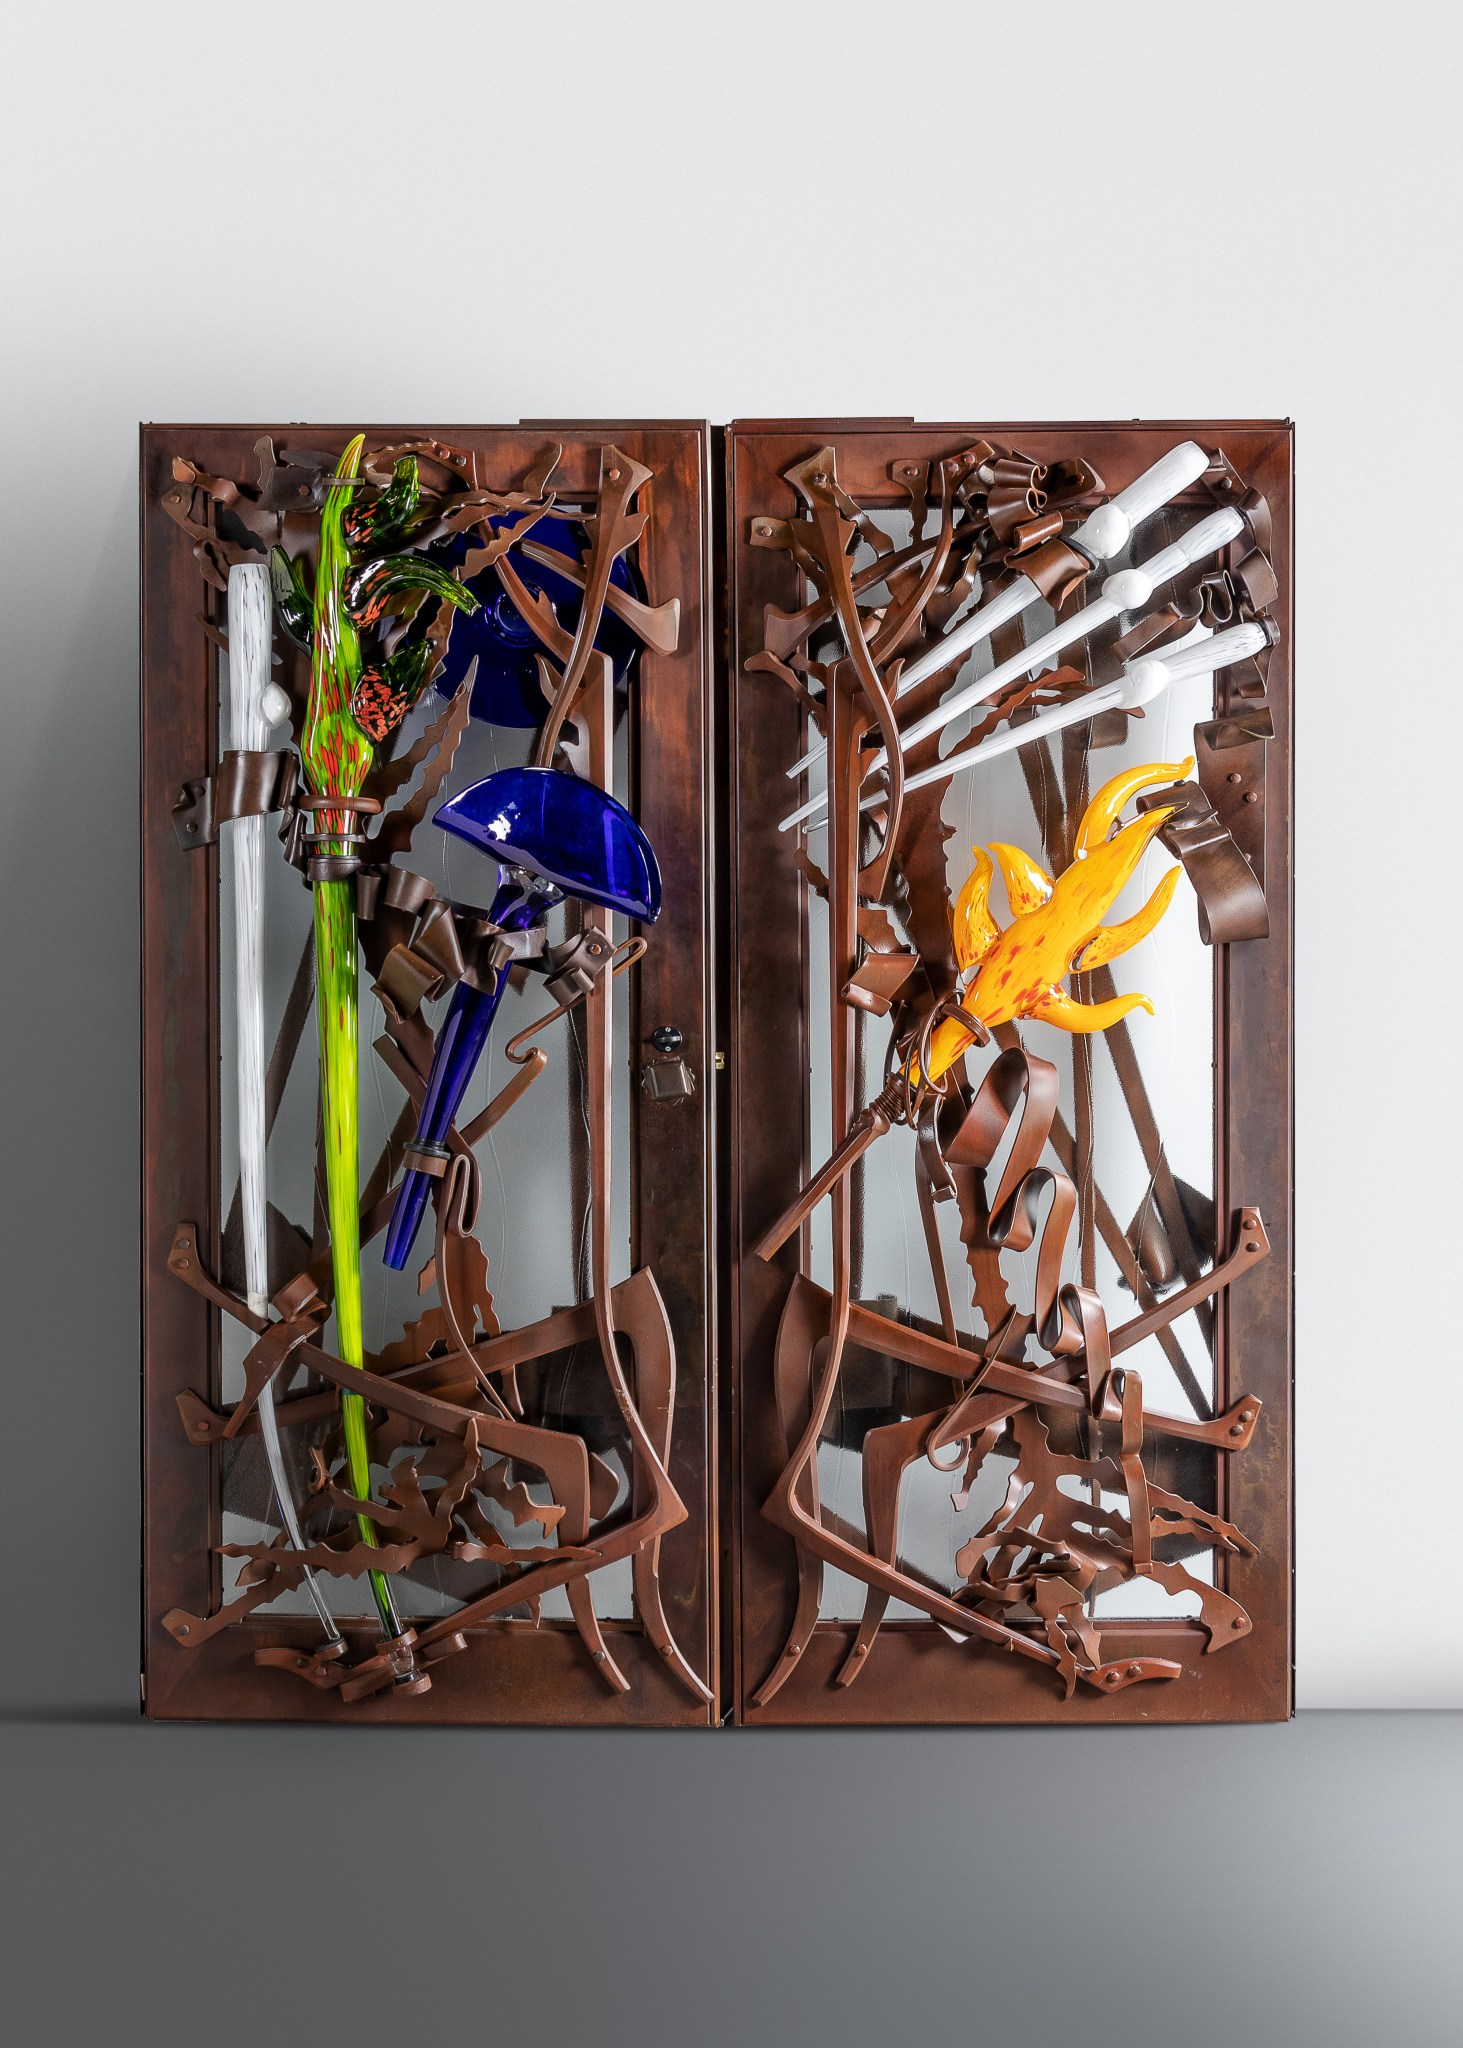 Pair of entrance doors by Albert Paley, glass elements by Martin Blank, 2004. Image courtesy Hindman